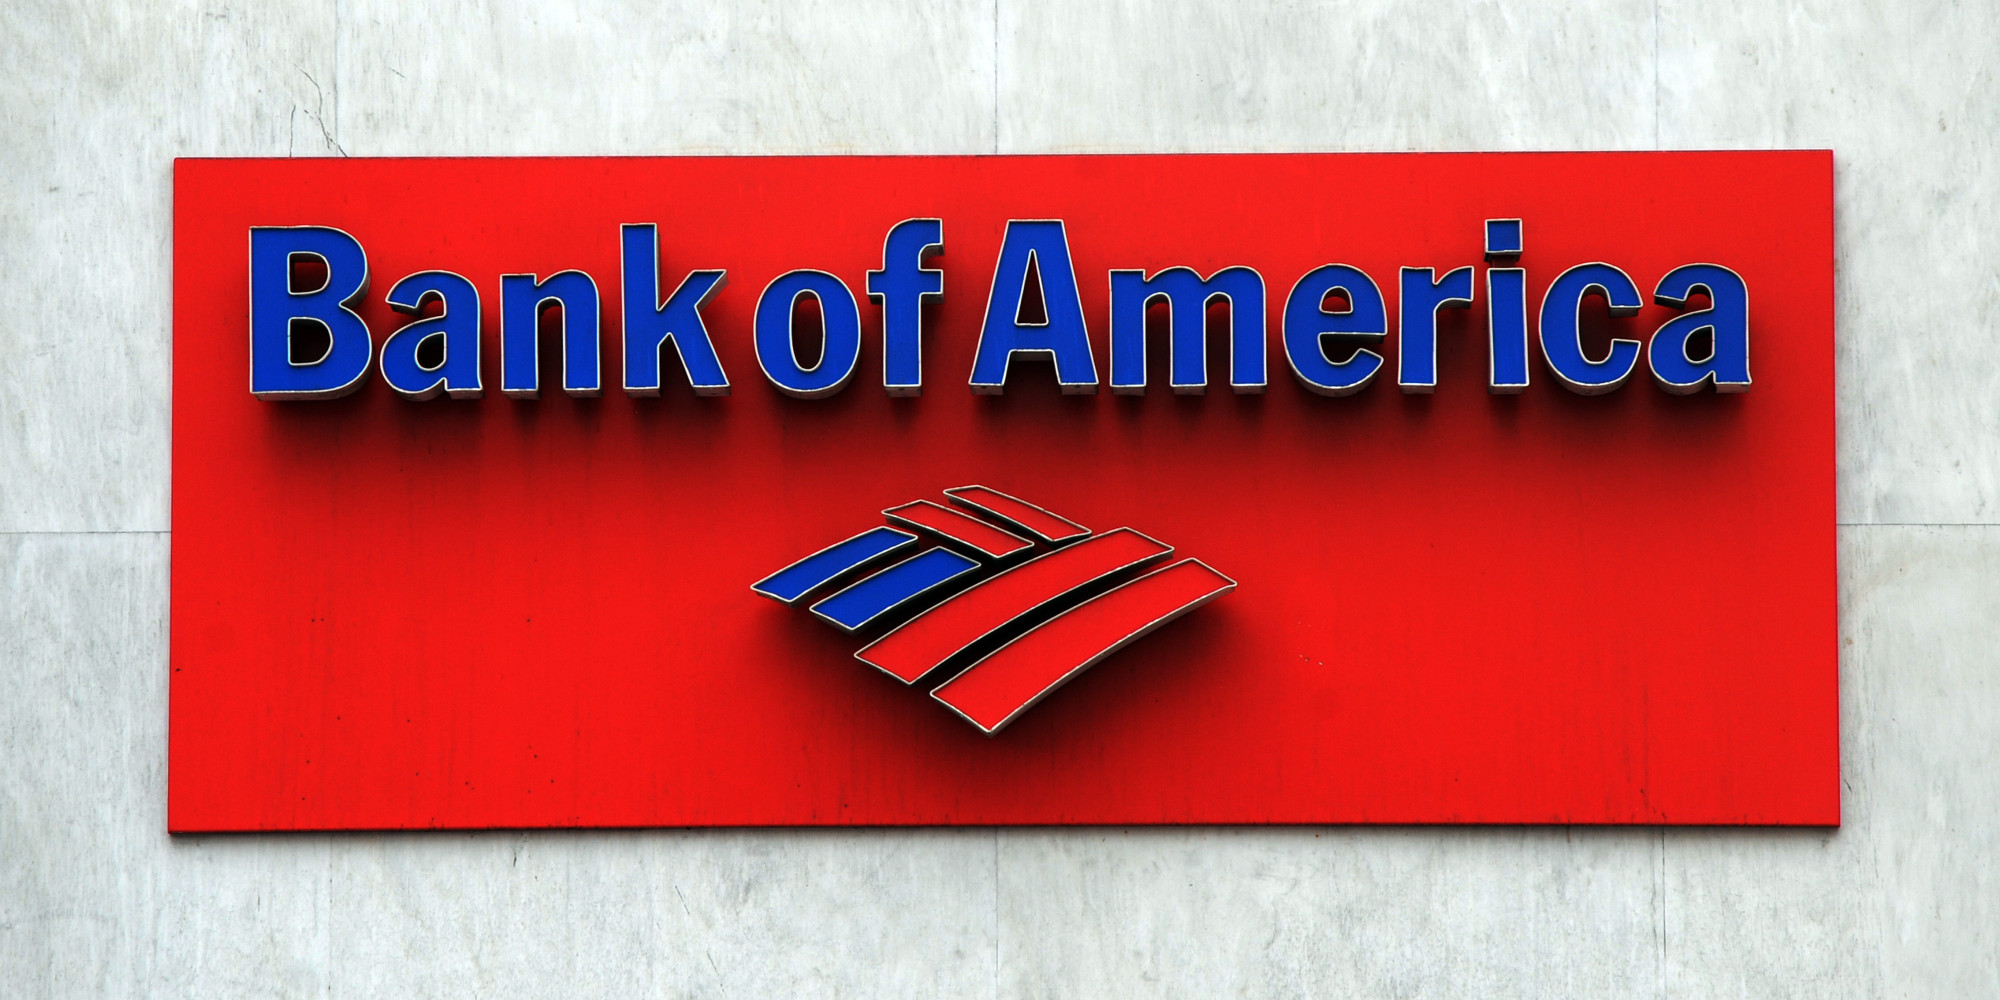 Bank Of America Intern Didn't Die Of Over-Exhaustion